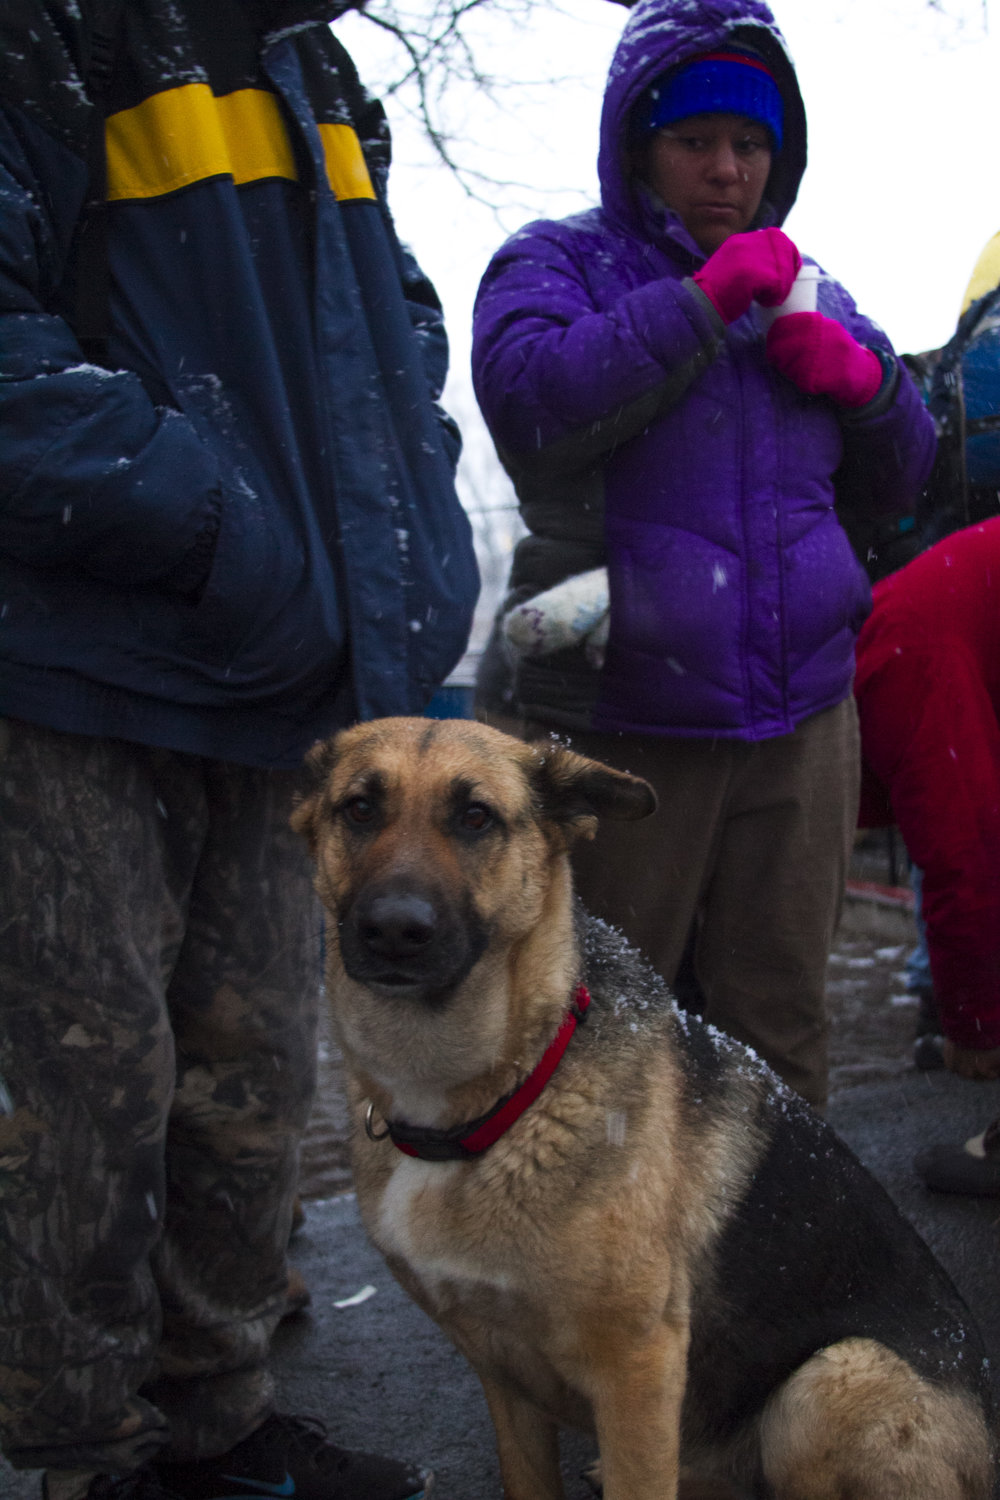 Dog food is also provided. Many houseless with pets avoid shelters because their companions are not accepted there. Photo by Jordan Gearey for Our Town Reno.